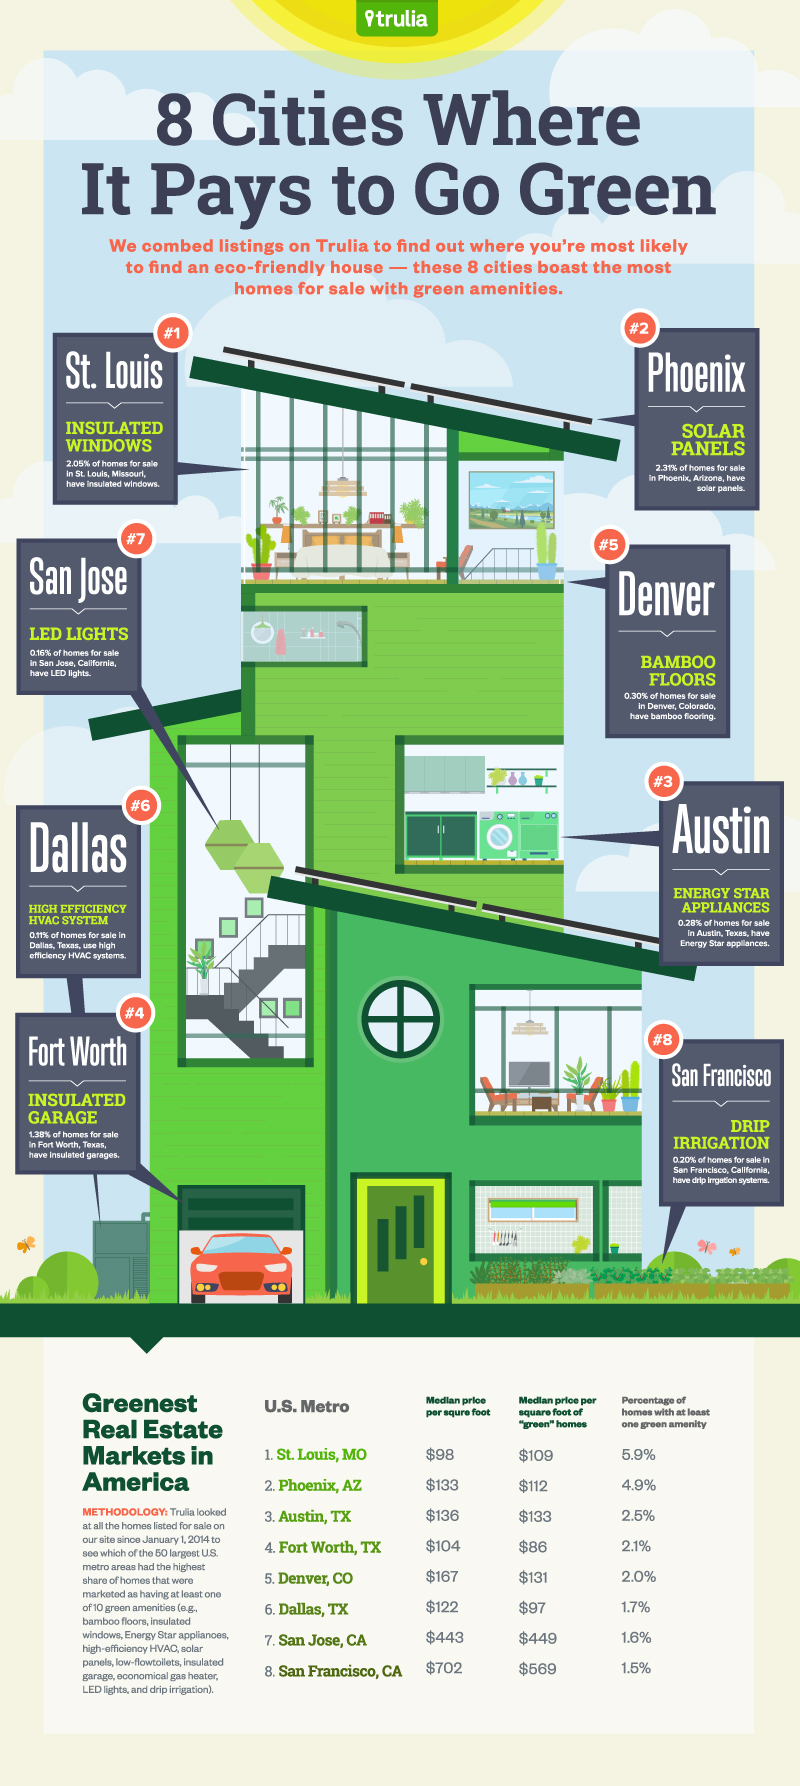 TRULIA-Miles-Quillen-Infographic-8-Cities-Where-It-Pays-To-Go-Green-Infographic.jpeg